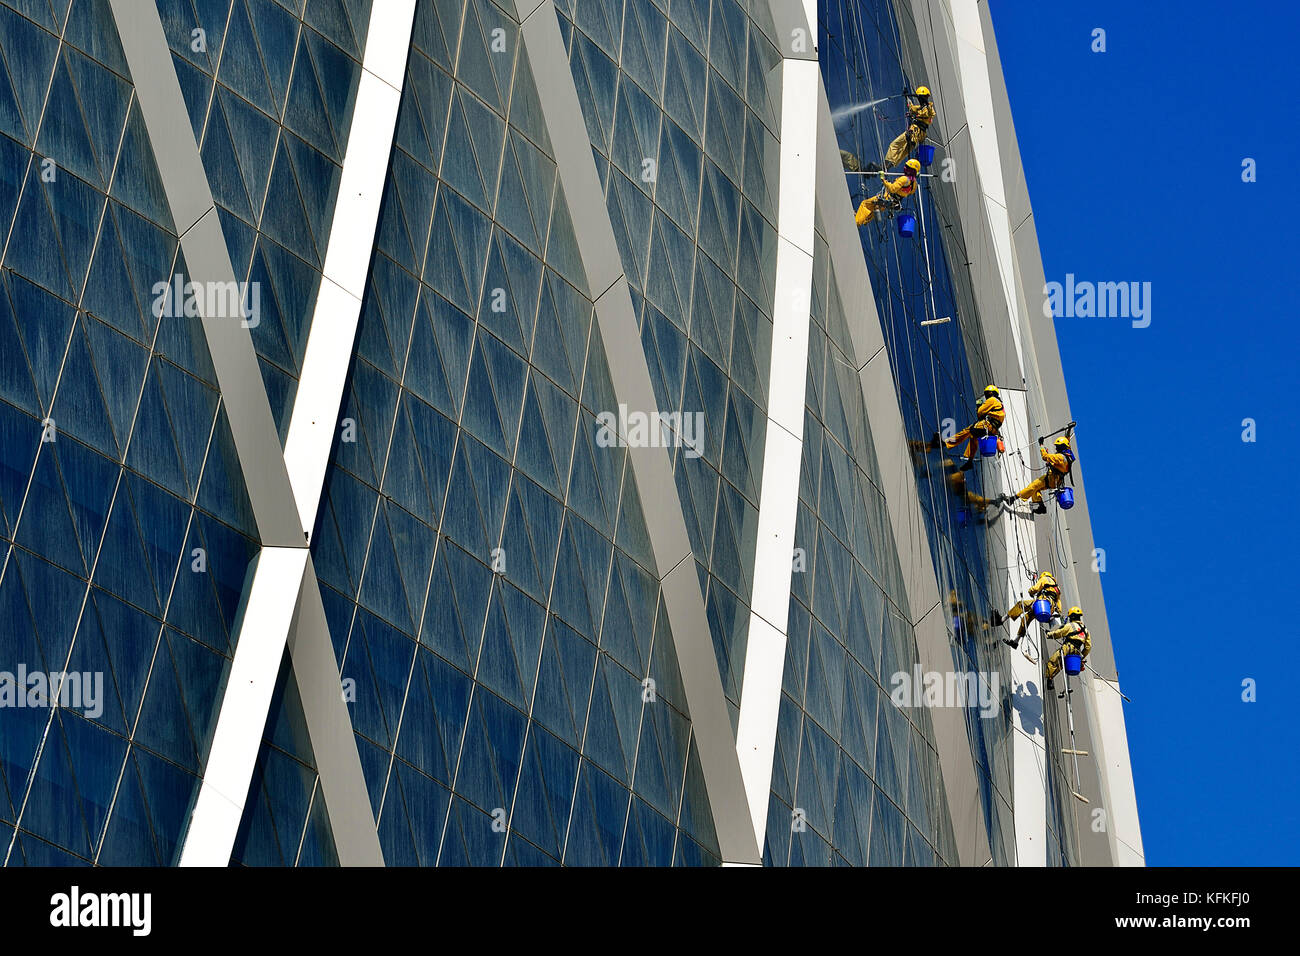 Window cleaners hang on The Coin building, headquarters of Aldar, one of the largest real estate companies in the - Stock Image